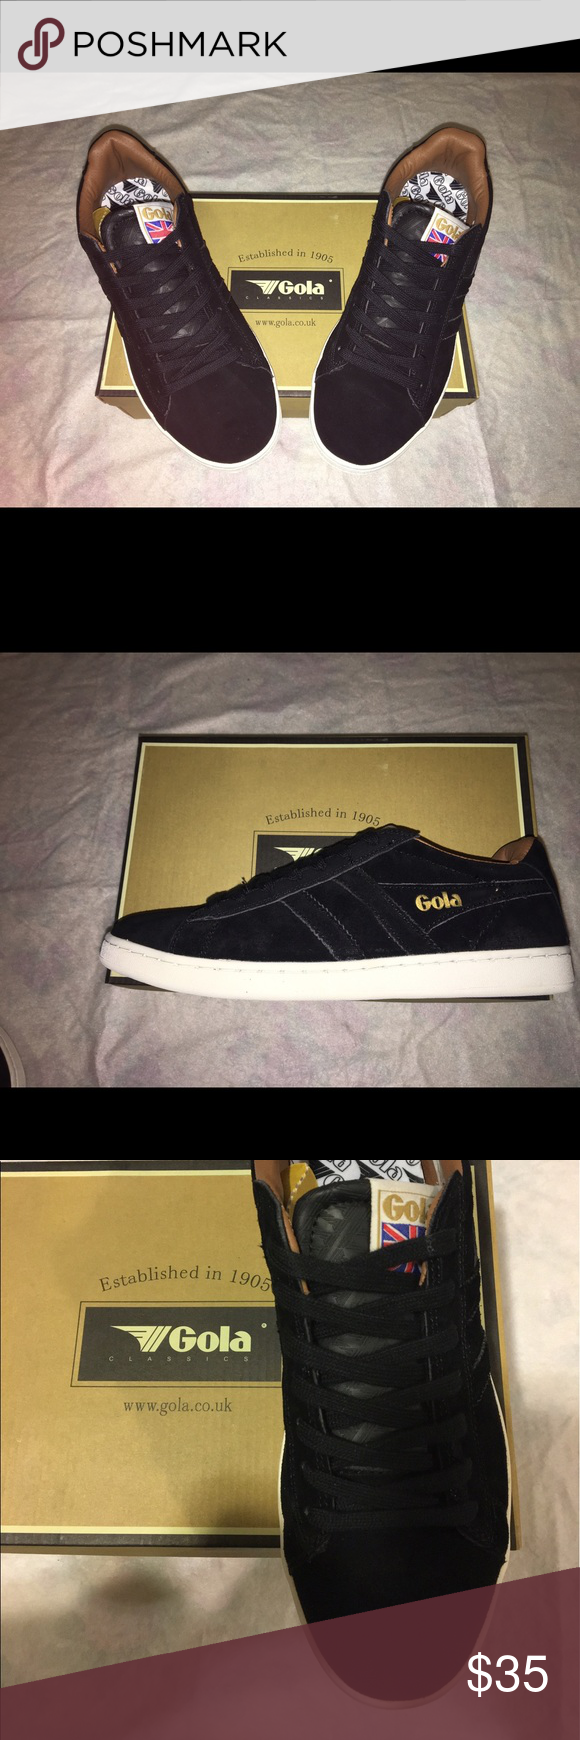 be8fd029b33 Brand New With box Gola equipe suede sneaker